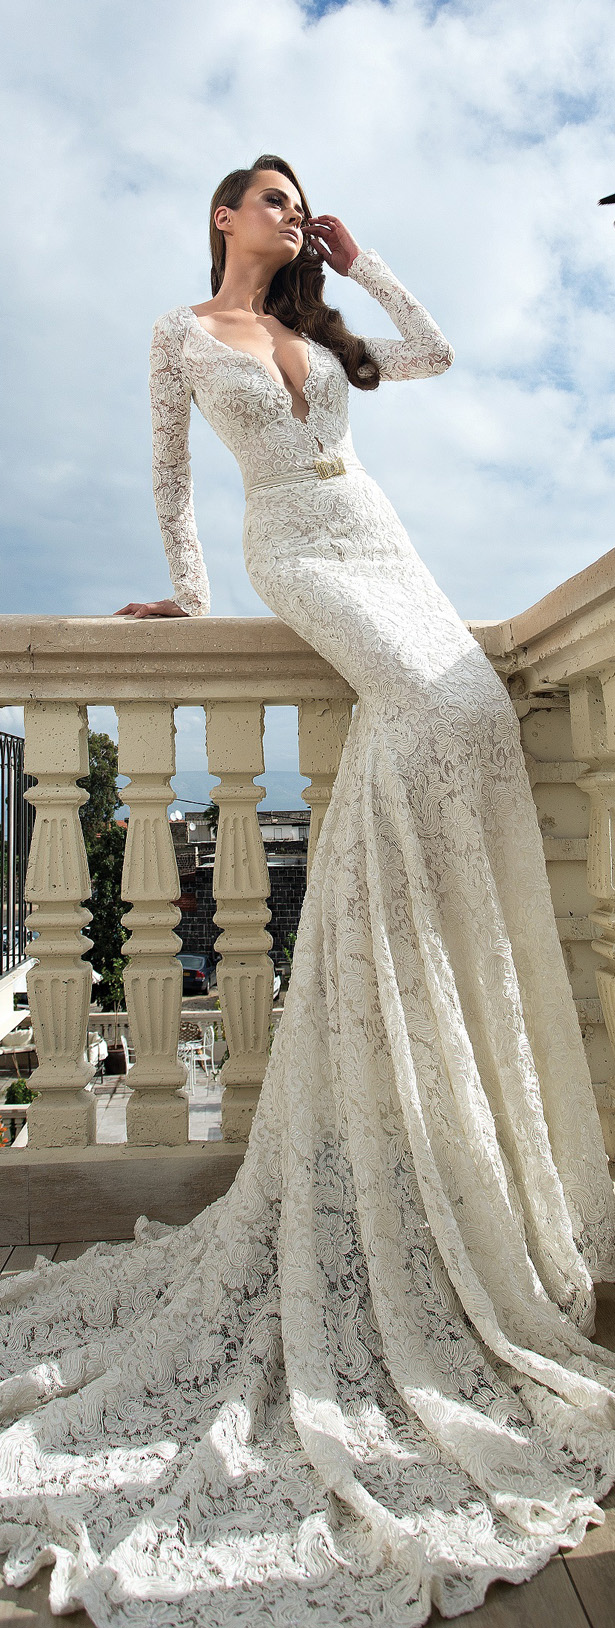 Gorgeous haute couture 2015 wedding dresses by shabi israel for Haute couture wedding dresses